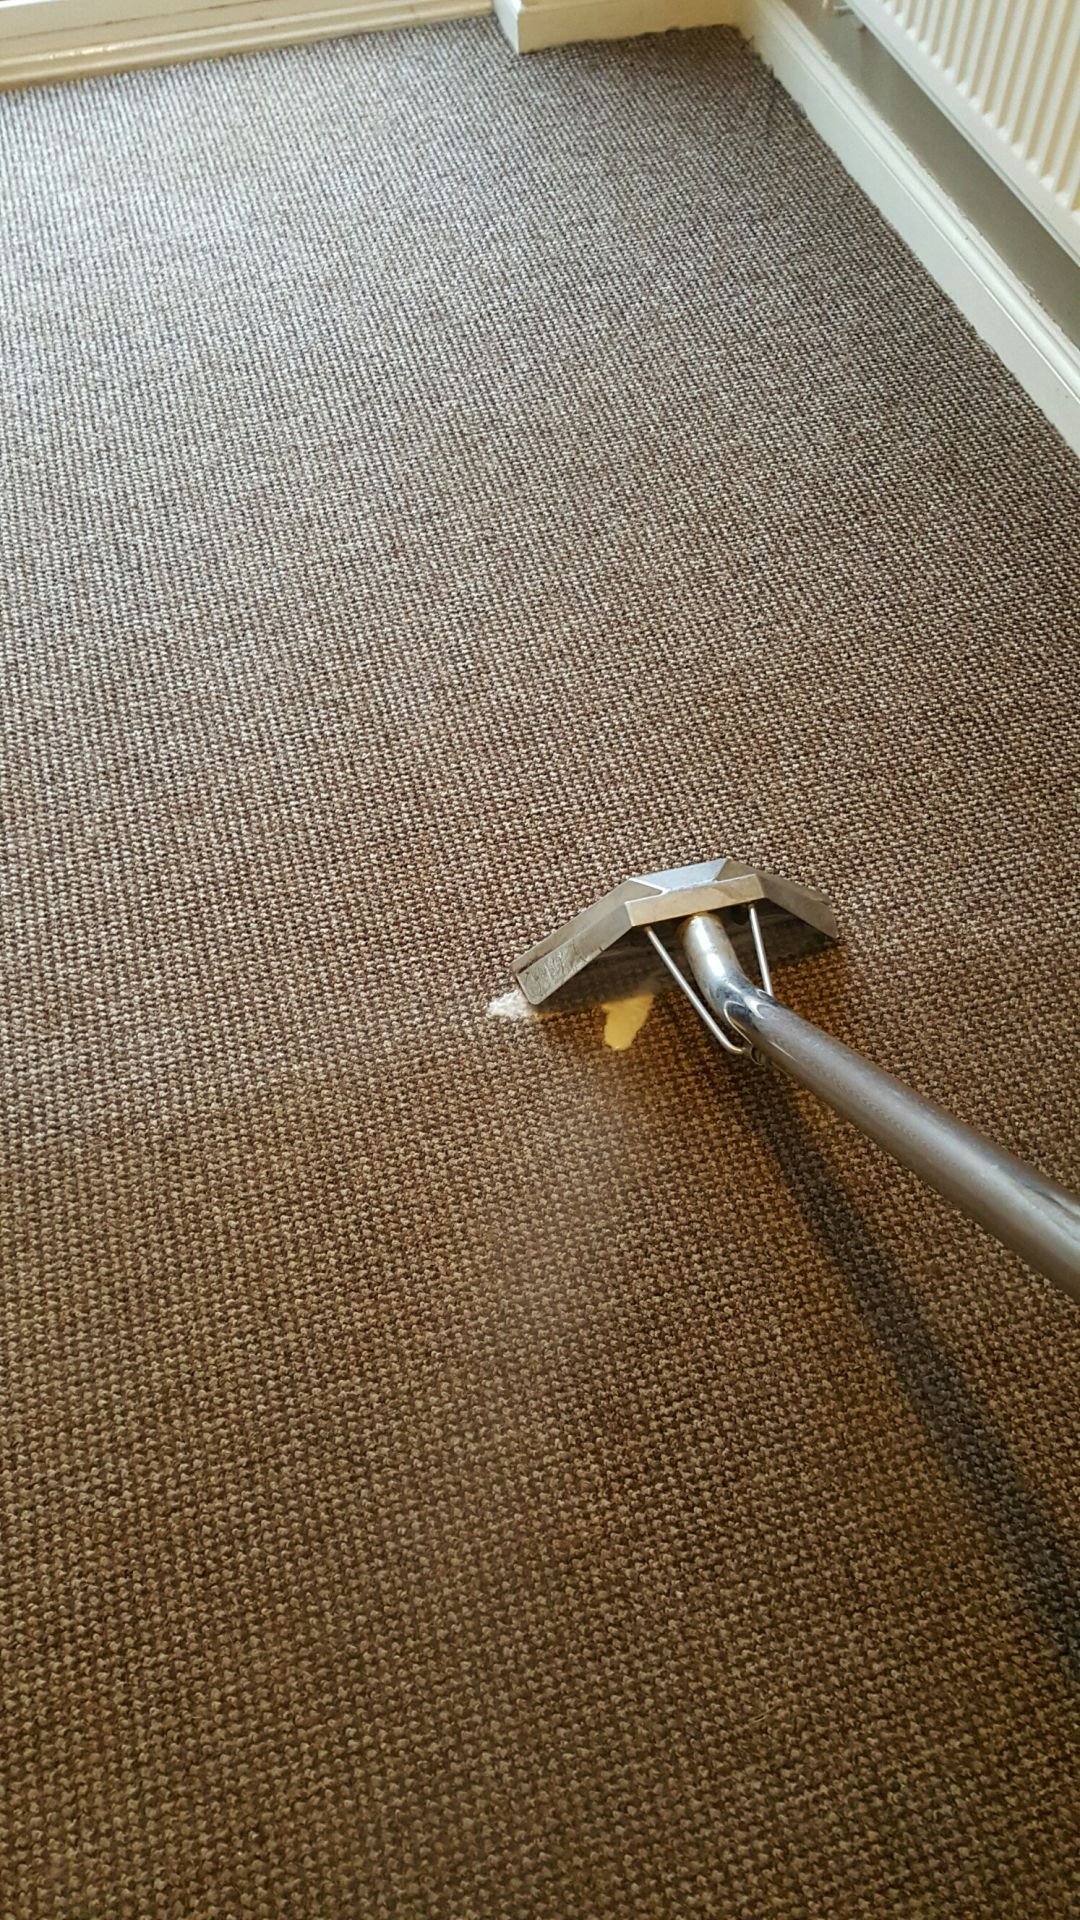 Carpet Cleaning in Lincolnshire - Lincs Multi-Clean